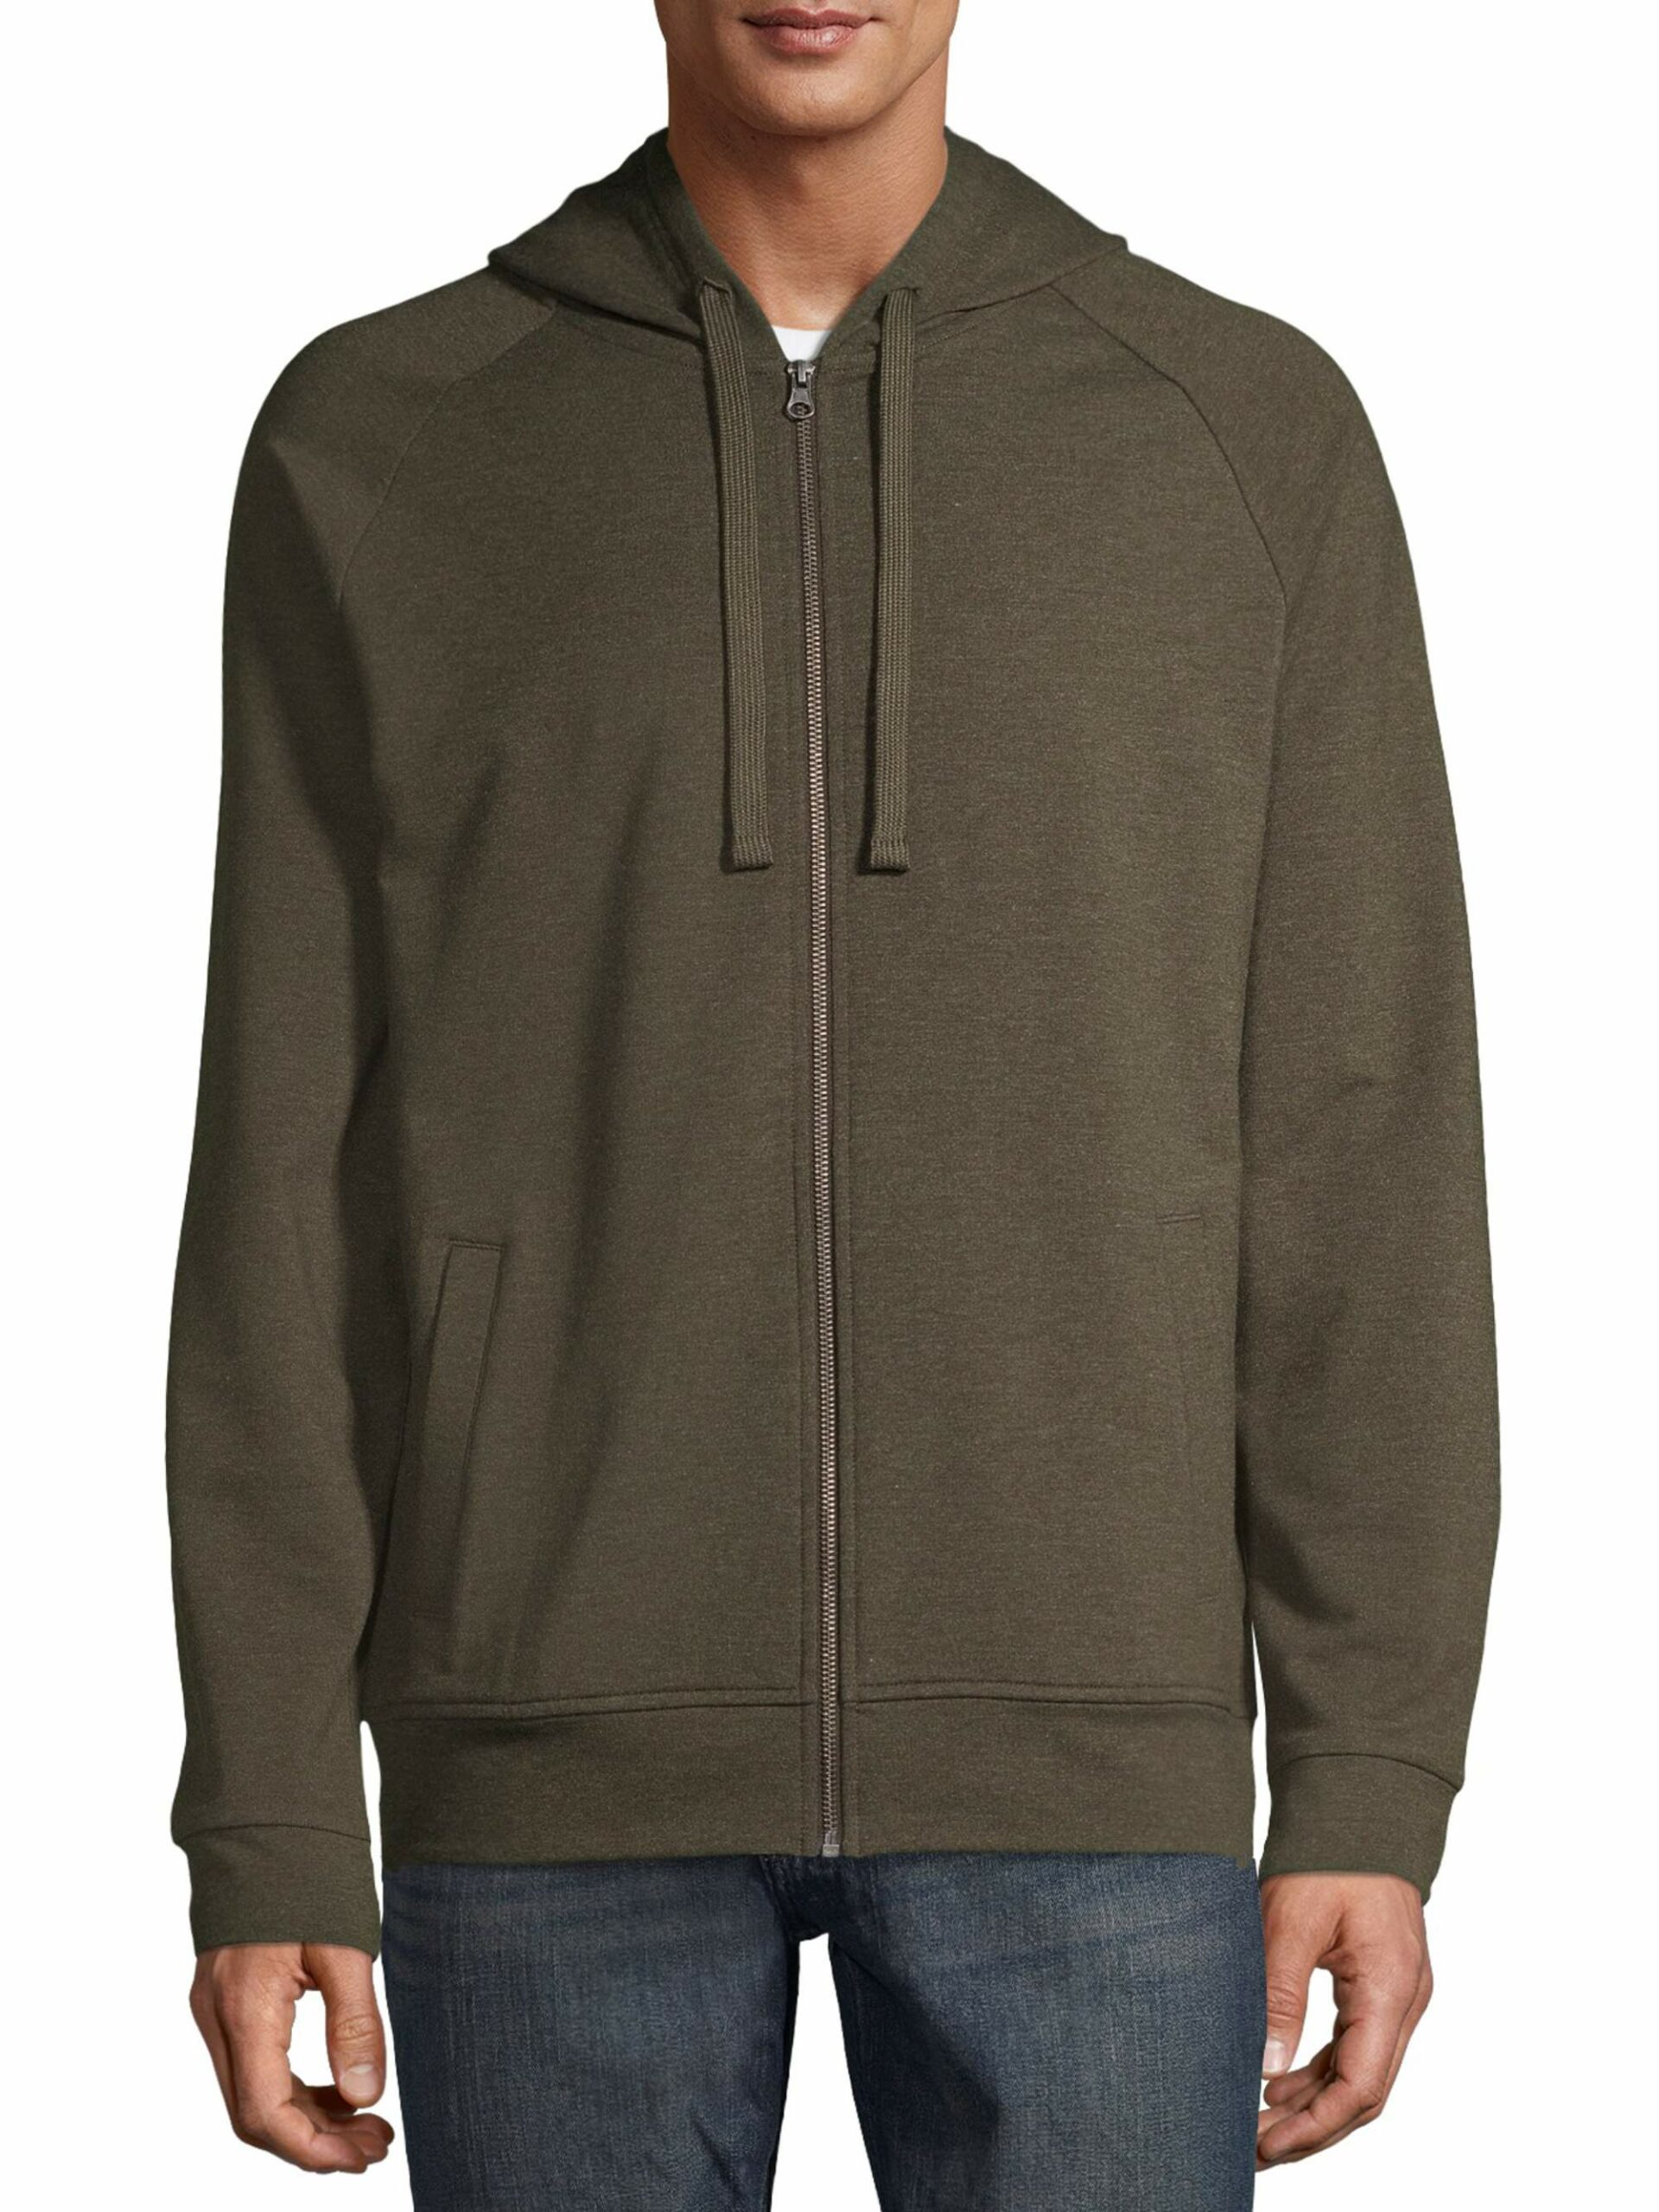 George Men's and Big Men's Fashion Full Zip Hoodie Smoky Olive Heather, up to Size XL/XG 46-48